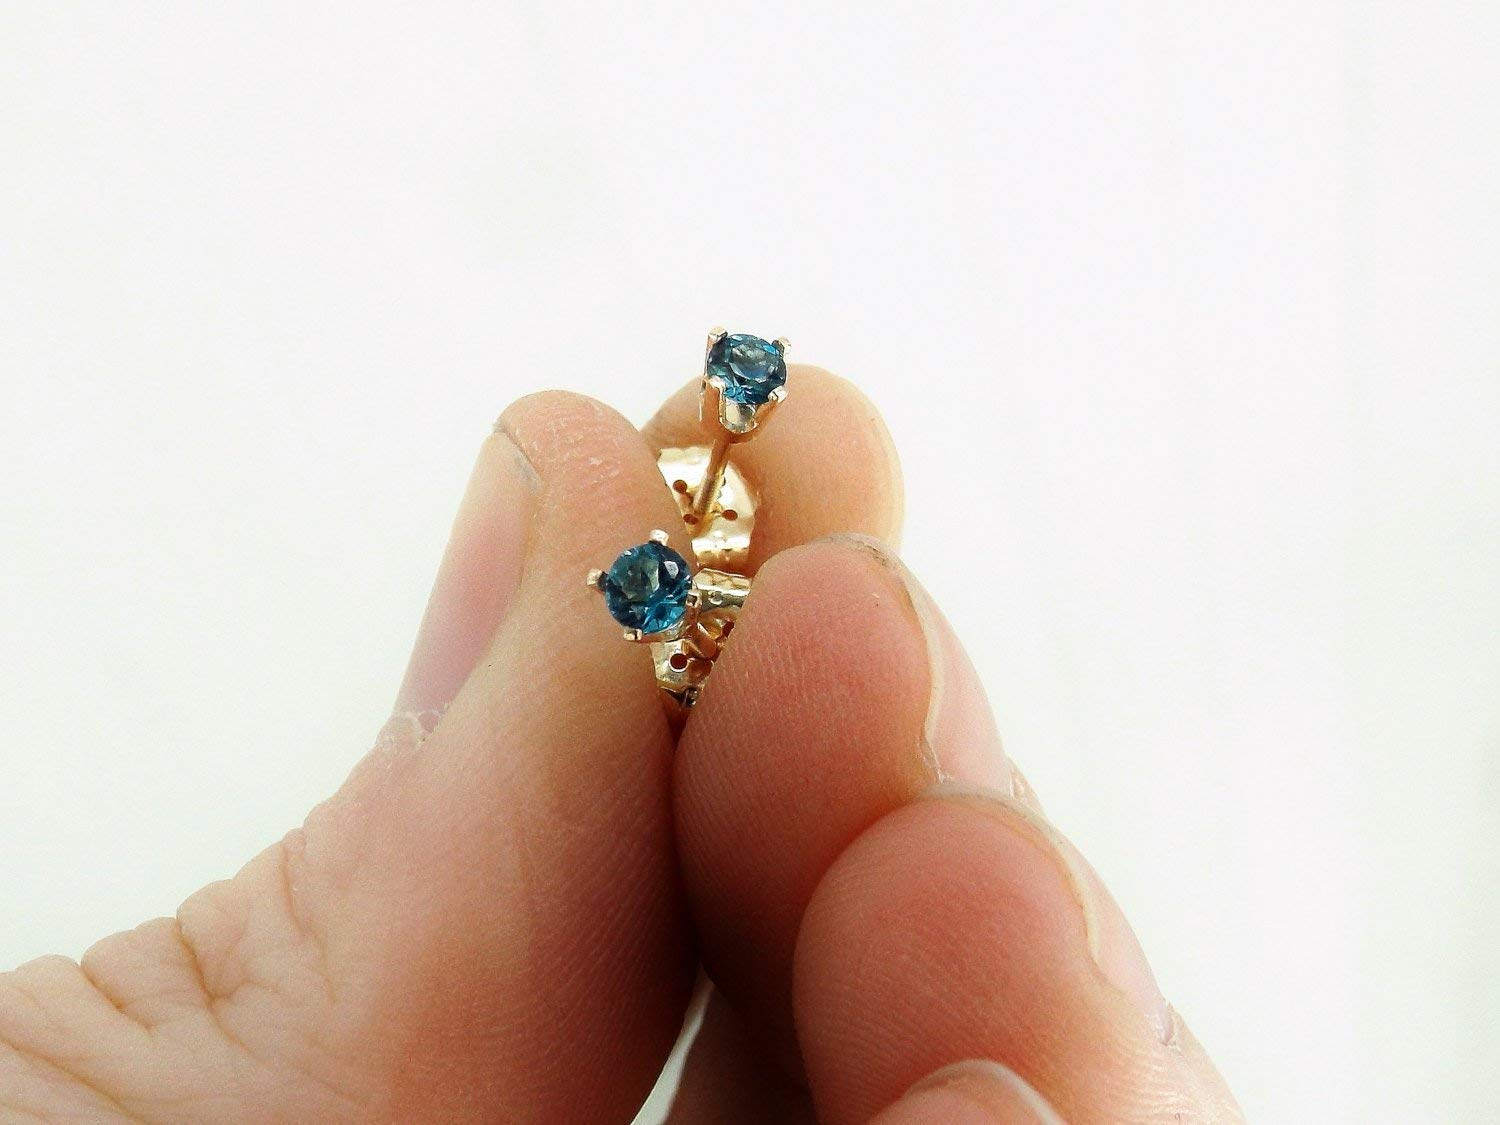 London Blue Topaz Earrings Gold Recommendation Super sale period limited 14k Solid